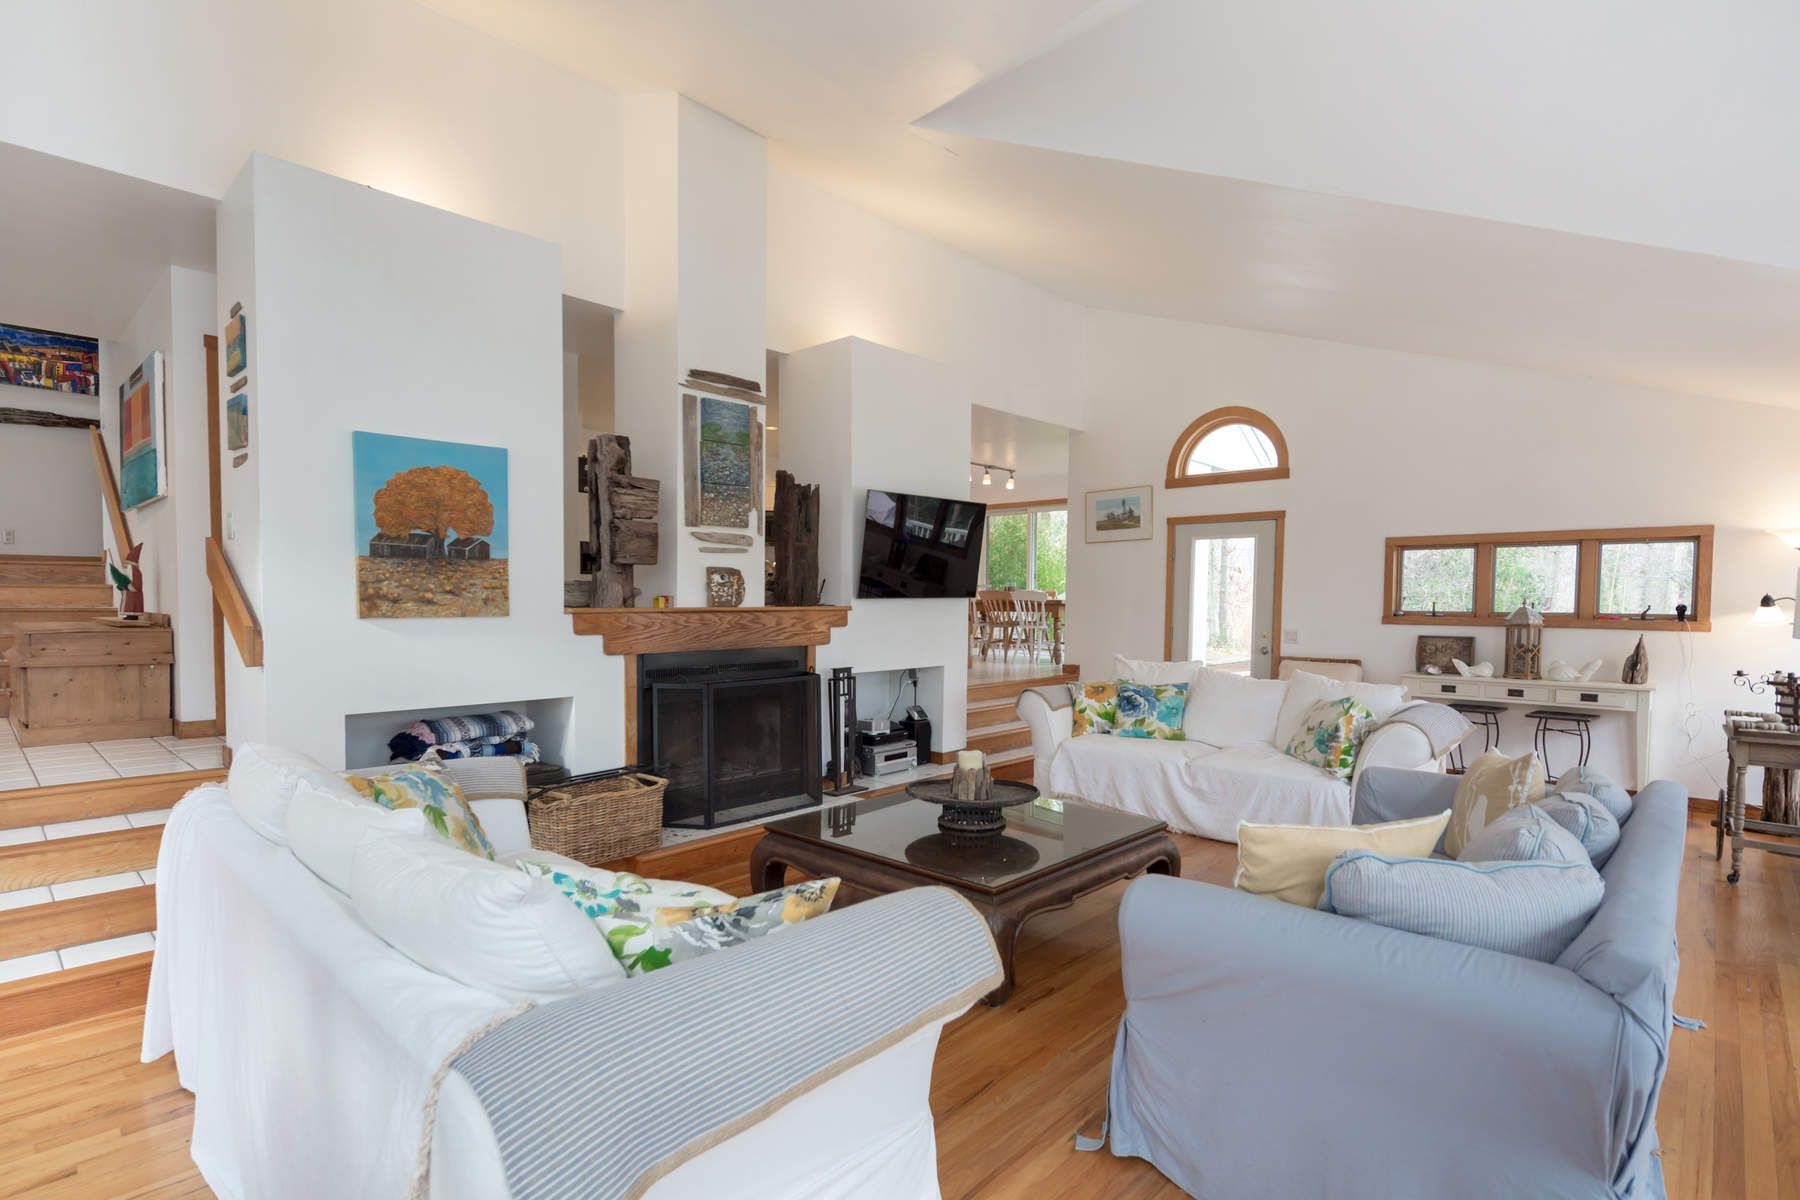 Single Family Home for Rent at NORTHWEST CONTEMPORARY NEAR THE BAY 7 Wigwam View Lane East Hampton, New York 11937 United States